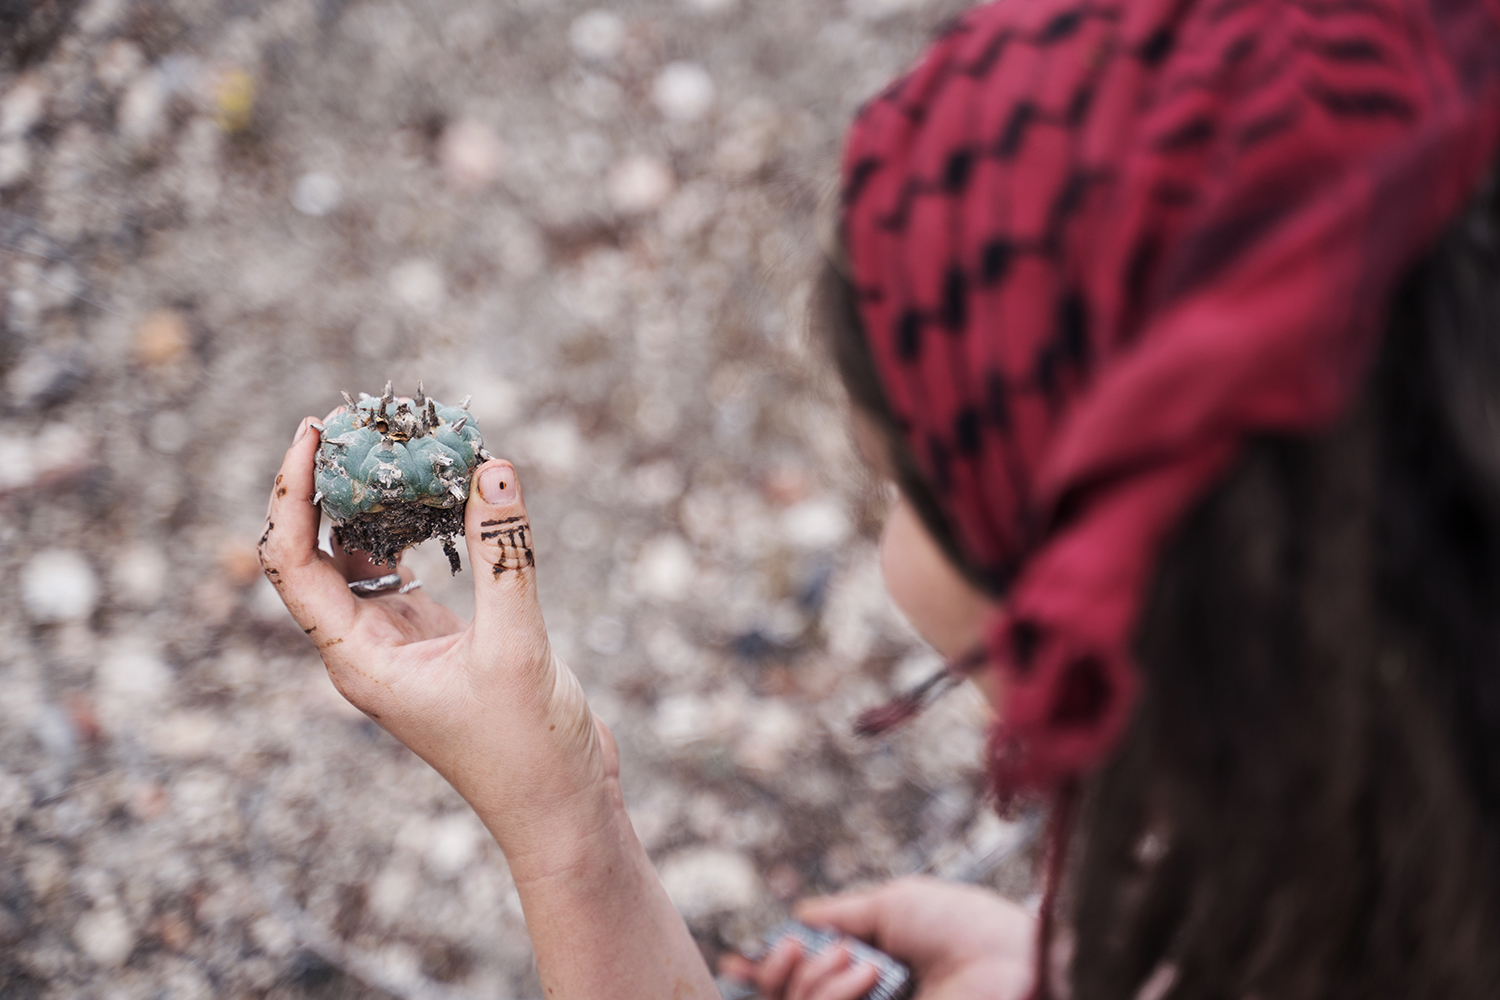 A woman holding a Peyote cactus in her hand.